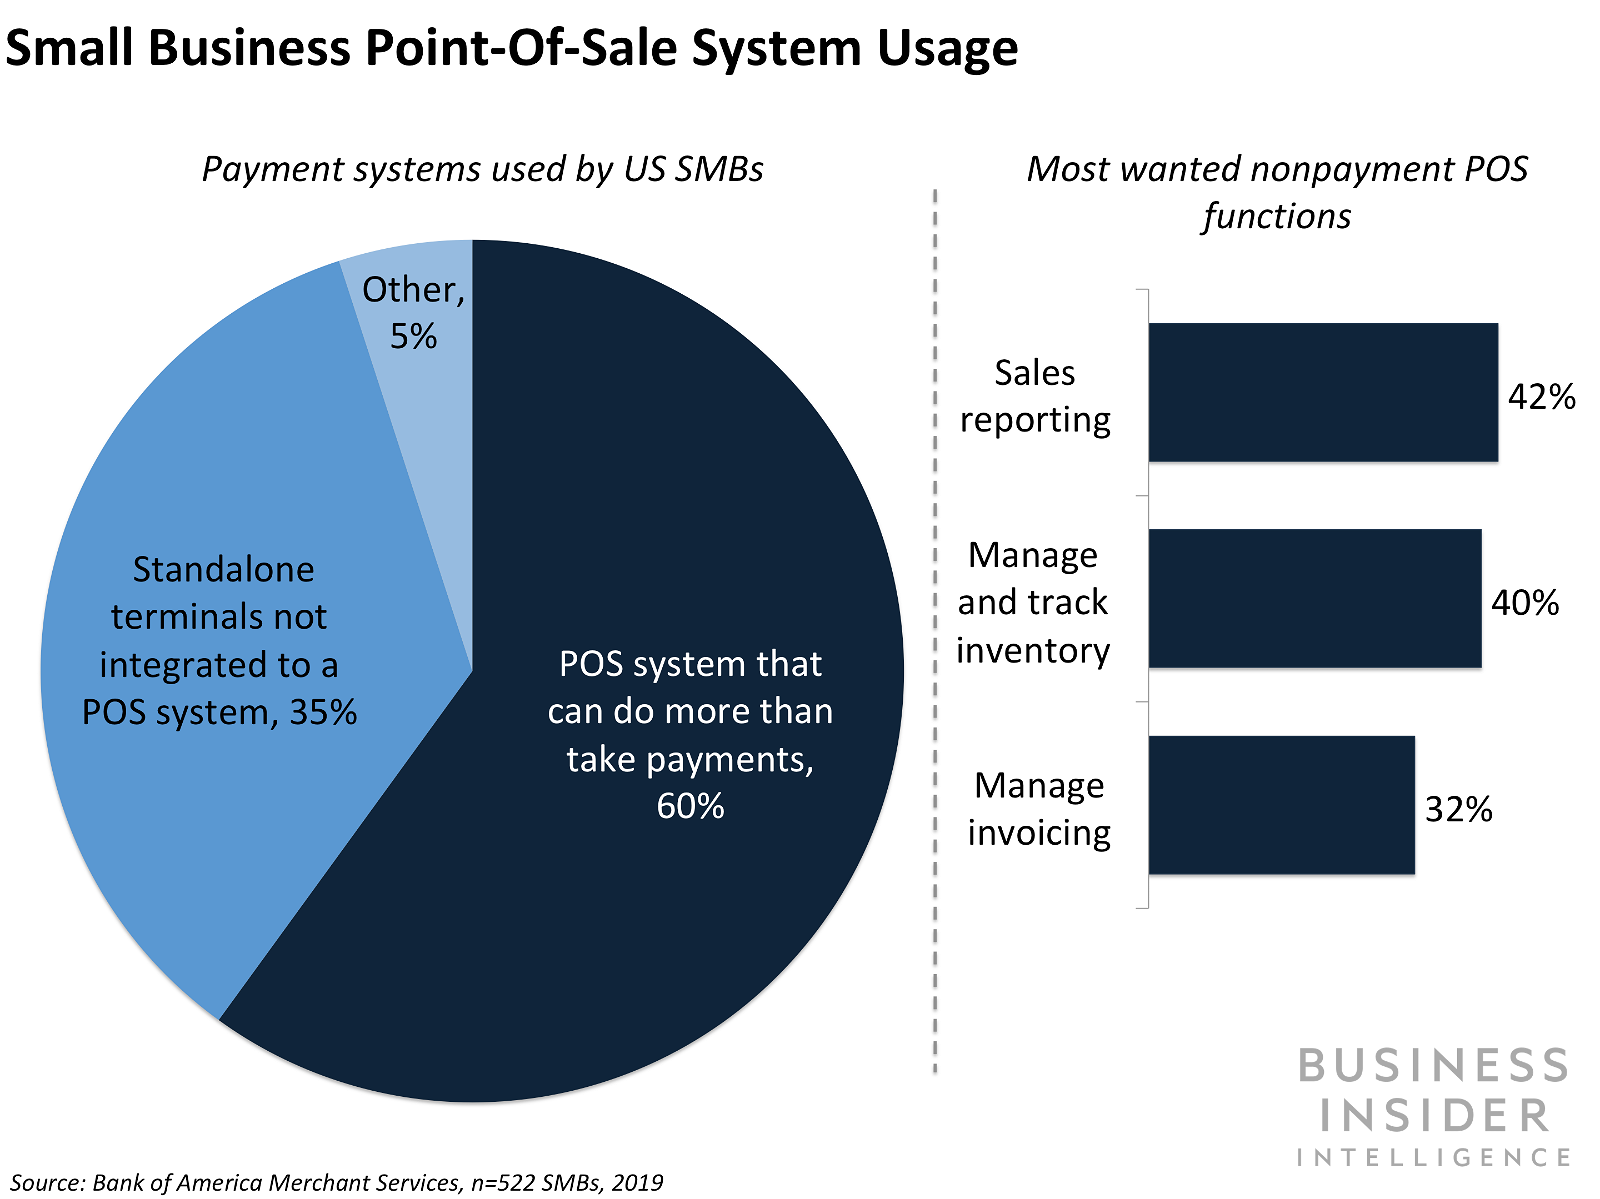 SMBs' embrace of digital payments is good news for POS providers.